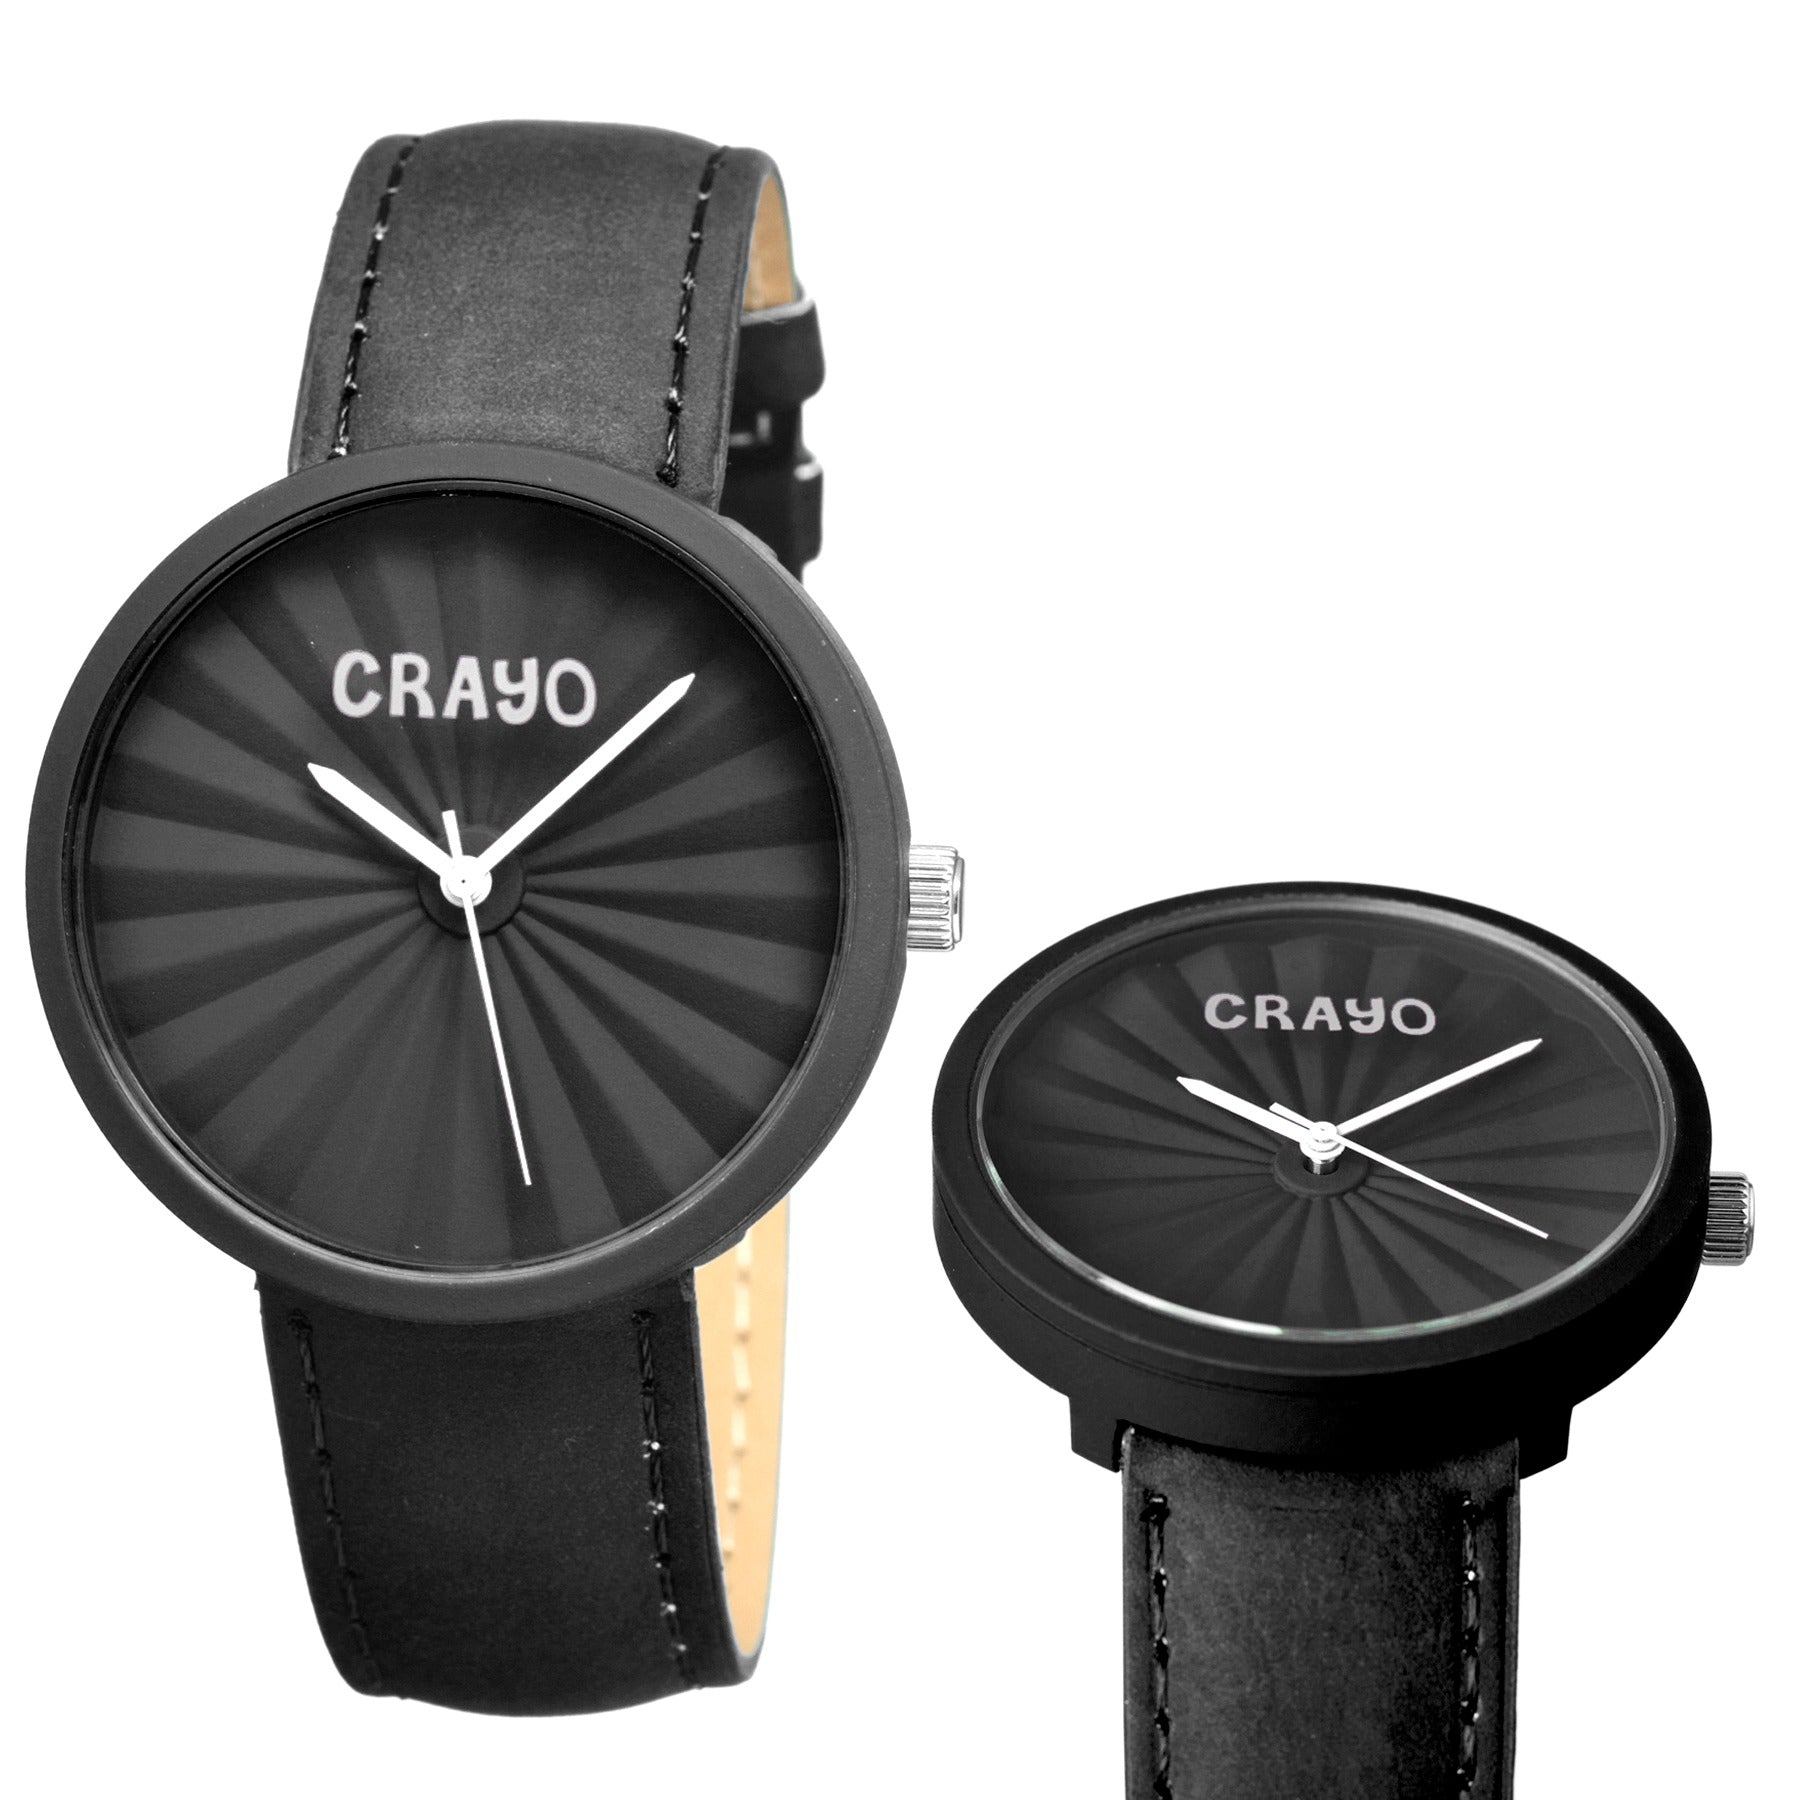 Crayo Pleats Leather-Band Unisex Watch - Black - CRACR1506